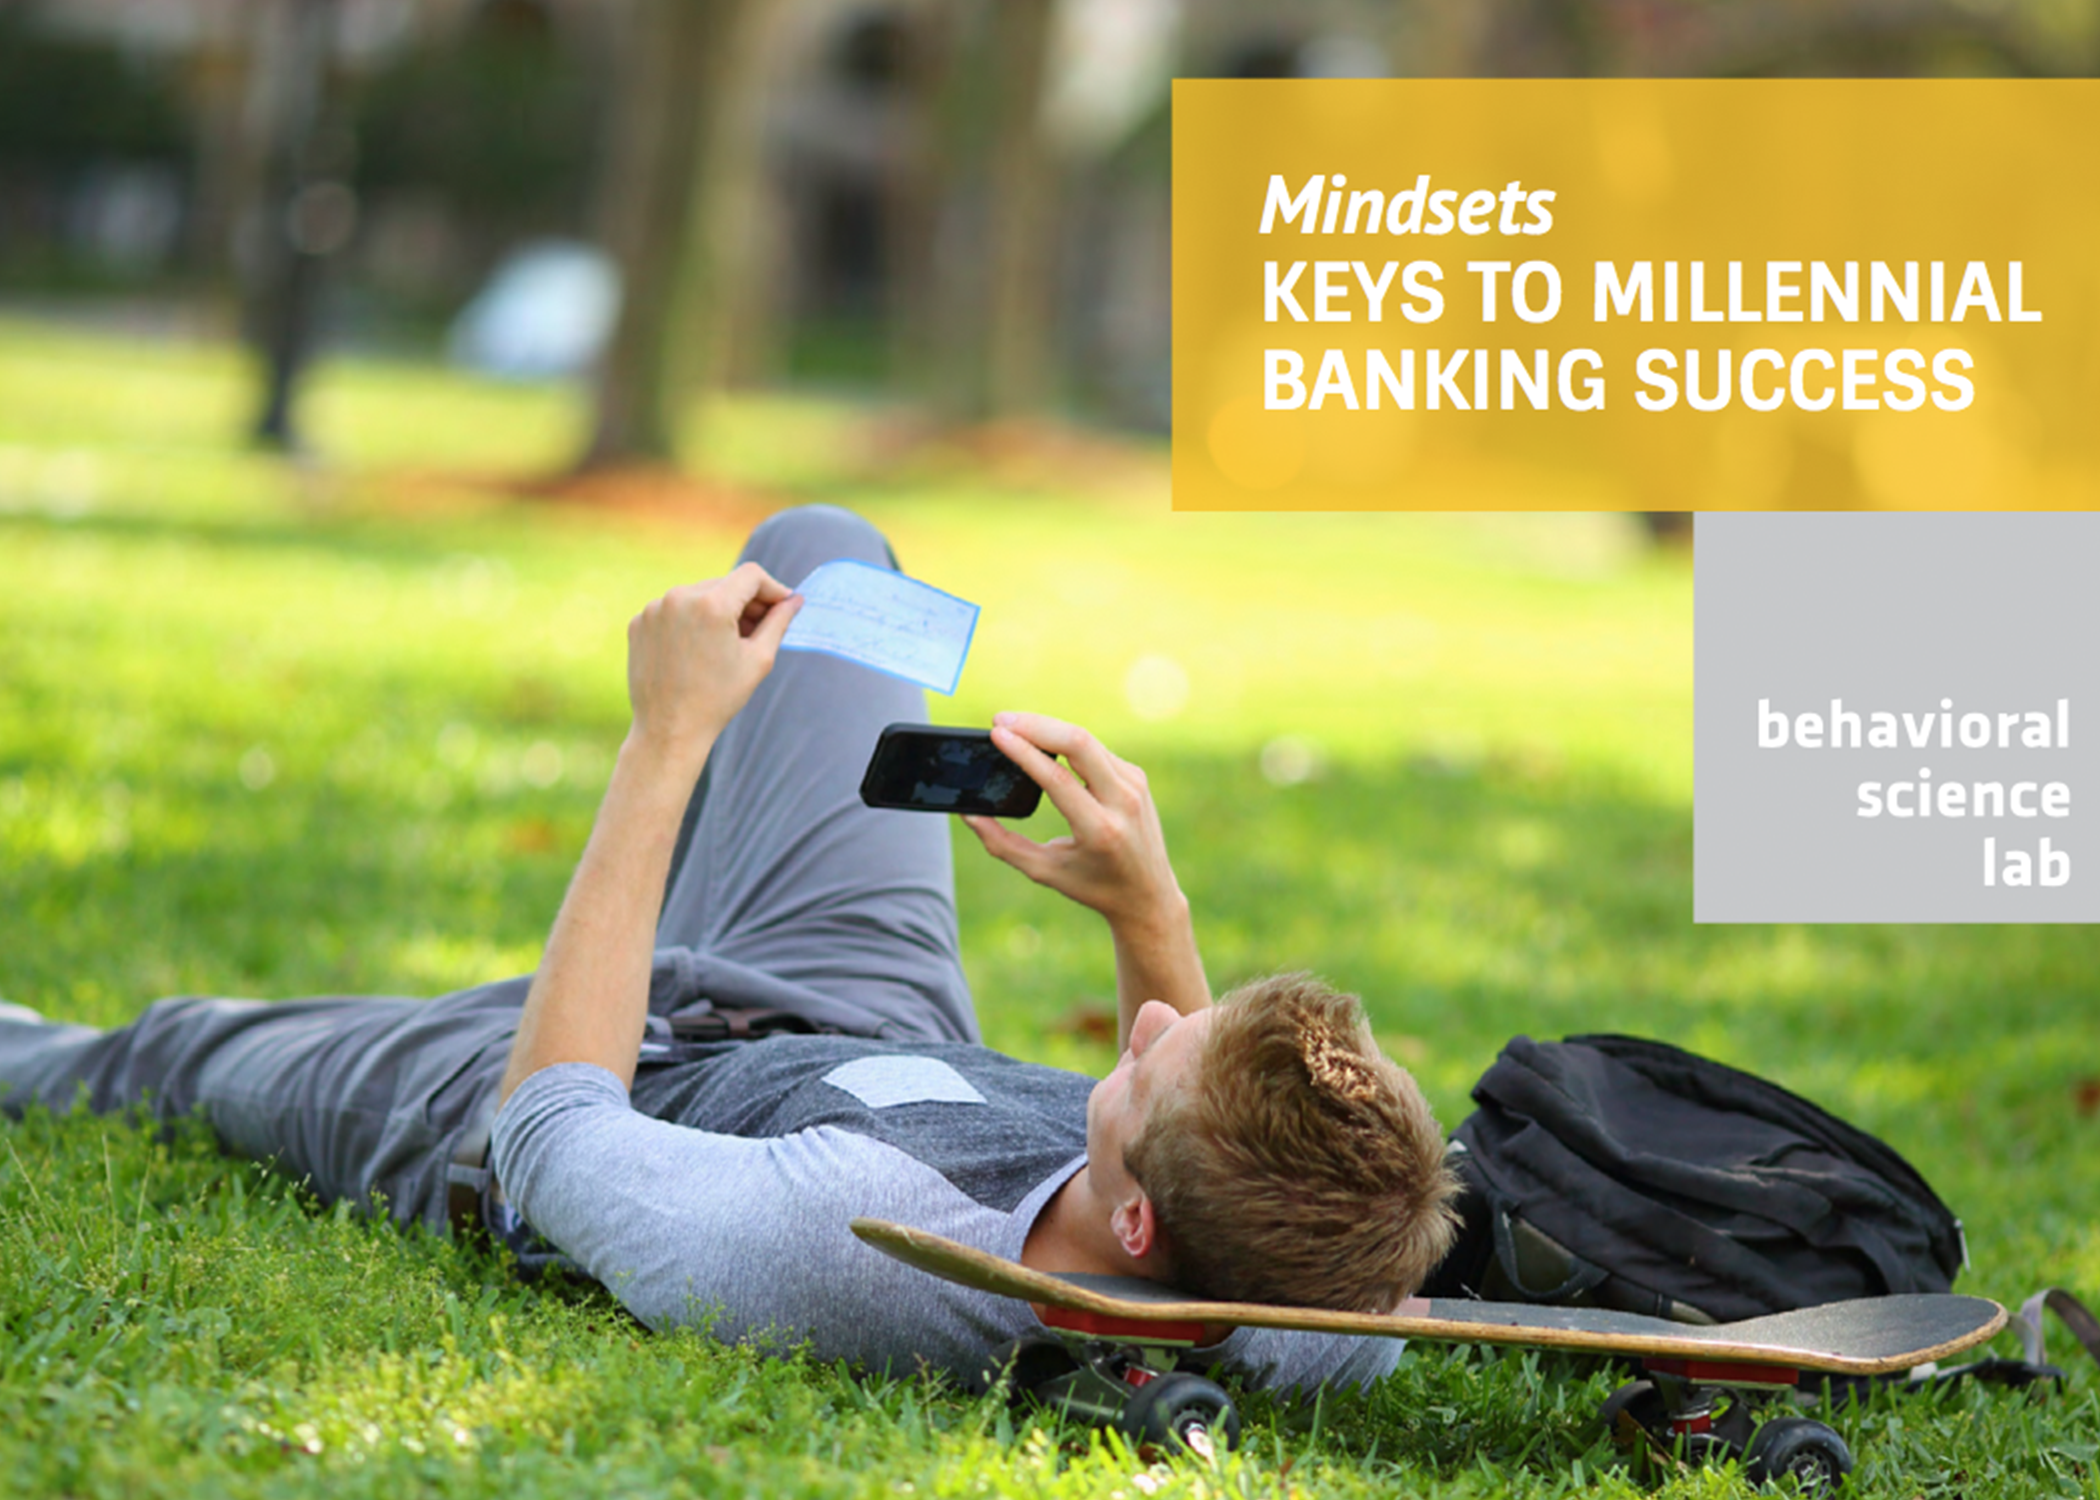 Mindsets — Keys to Millennial Banking Success -